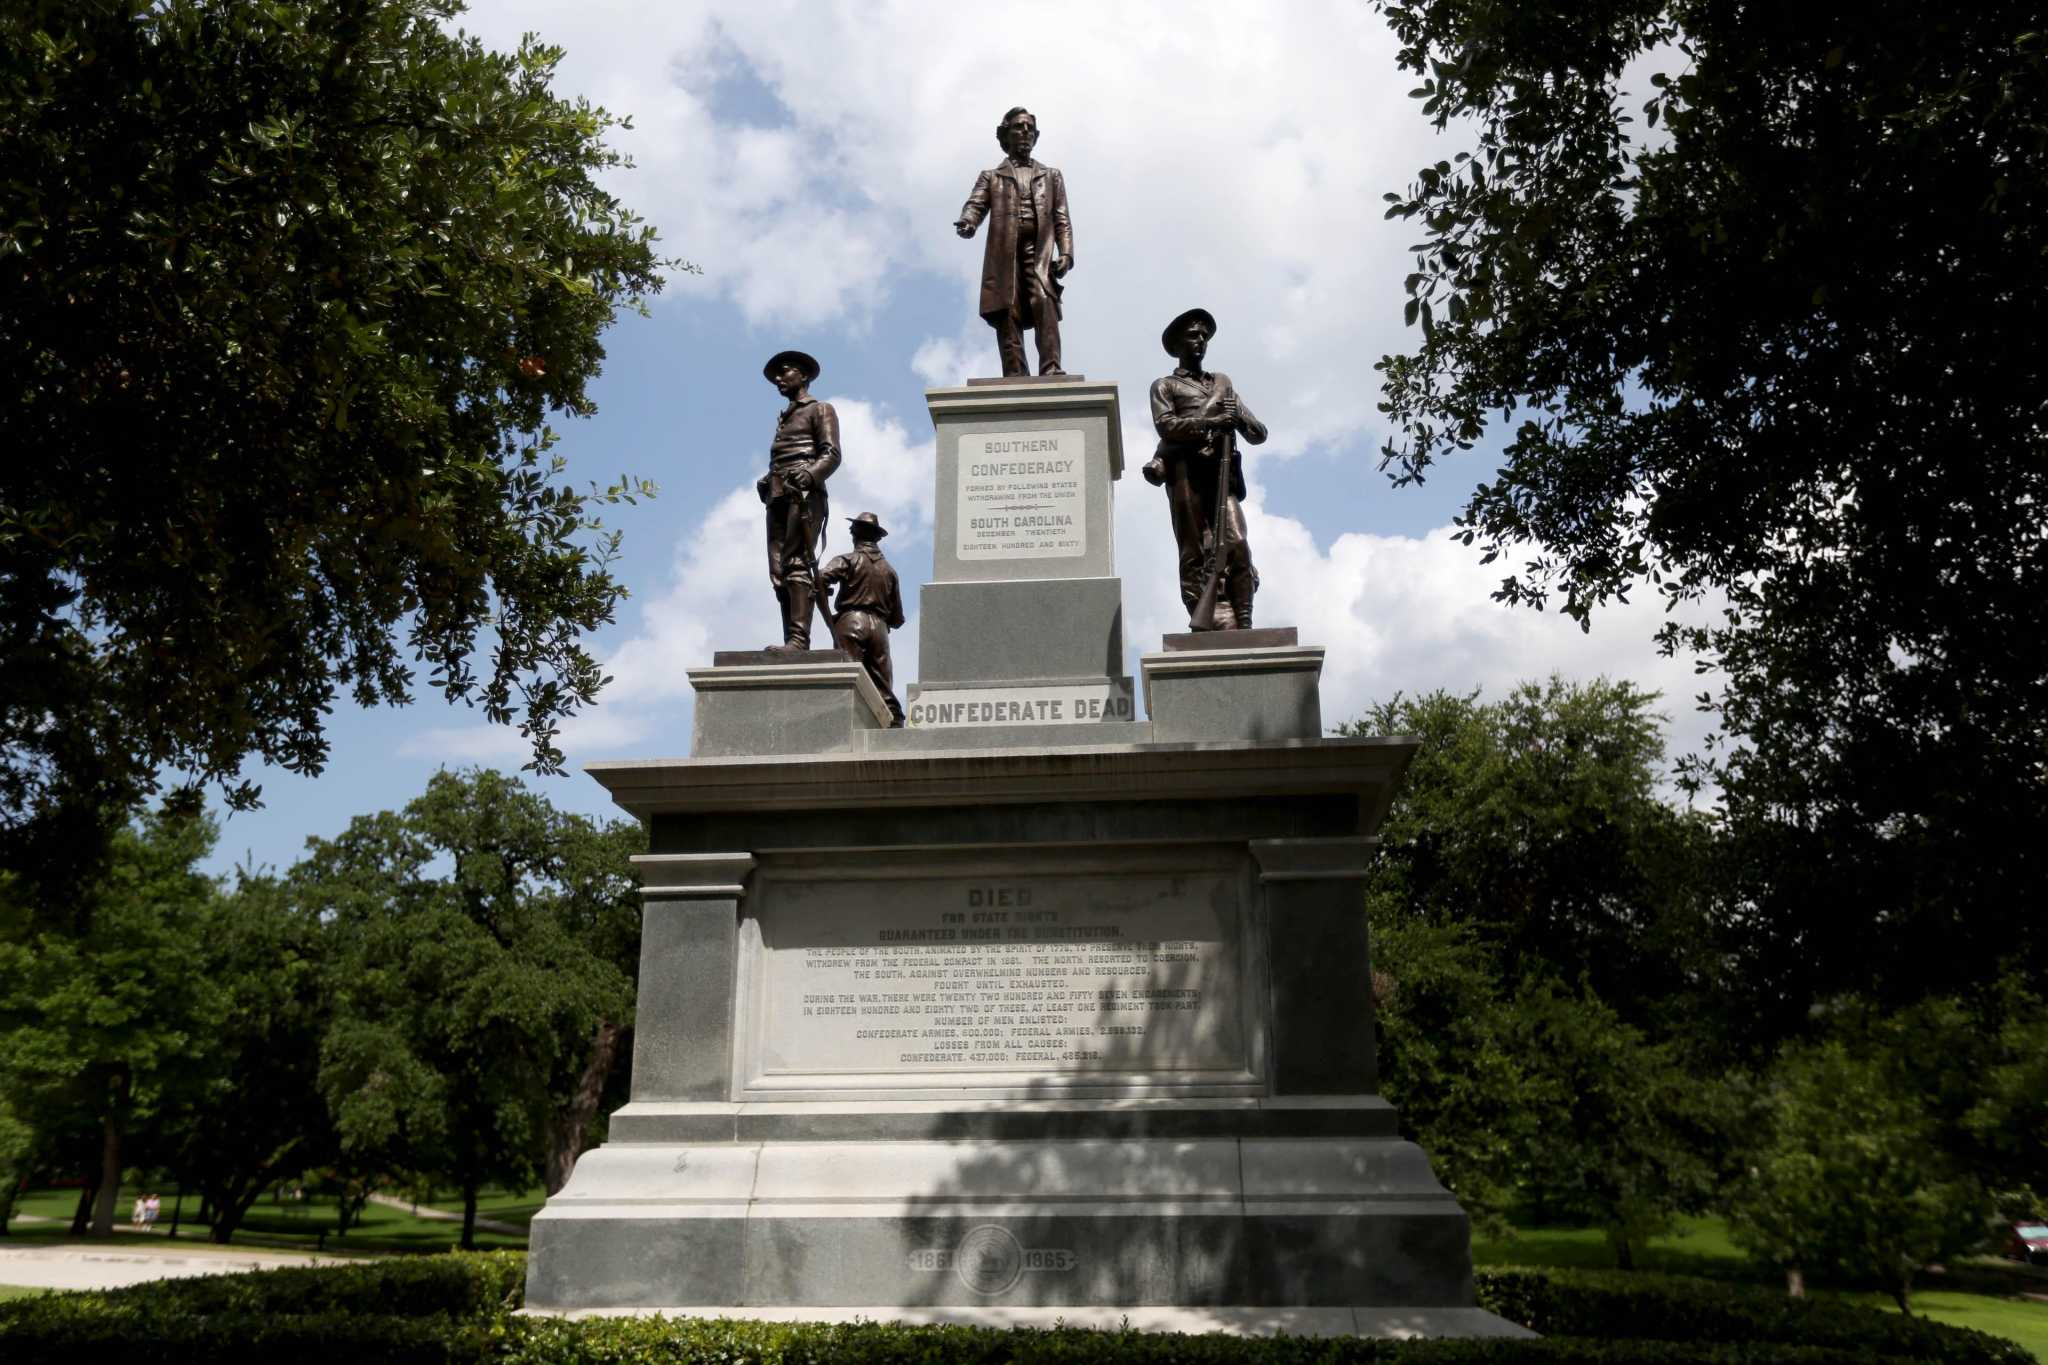 Celebrations of the Confederacy don't belong in Texas [Editorial]